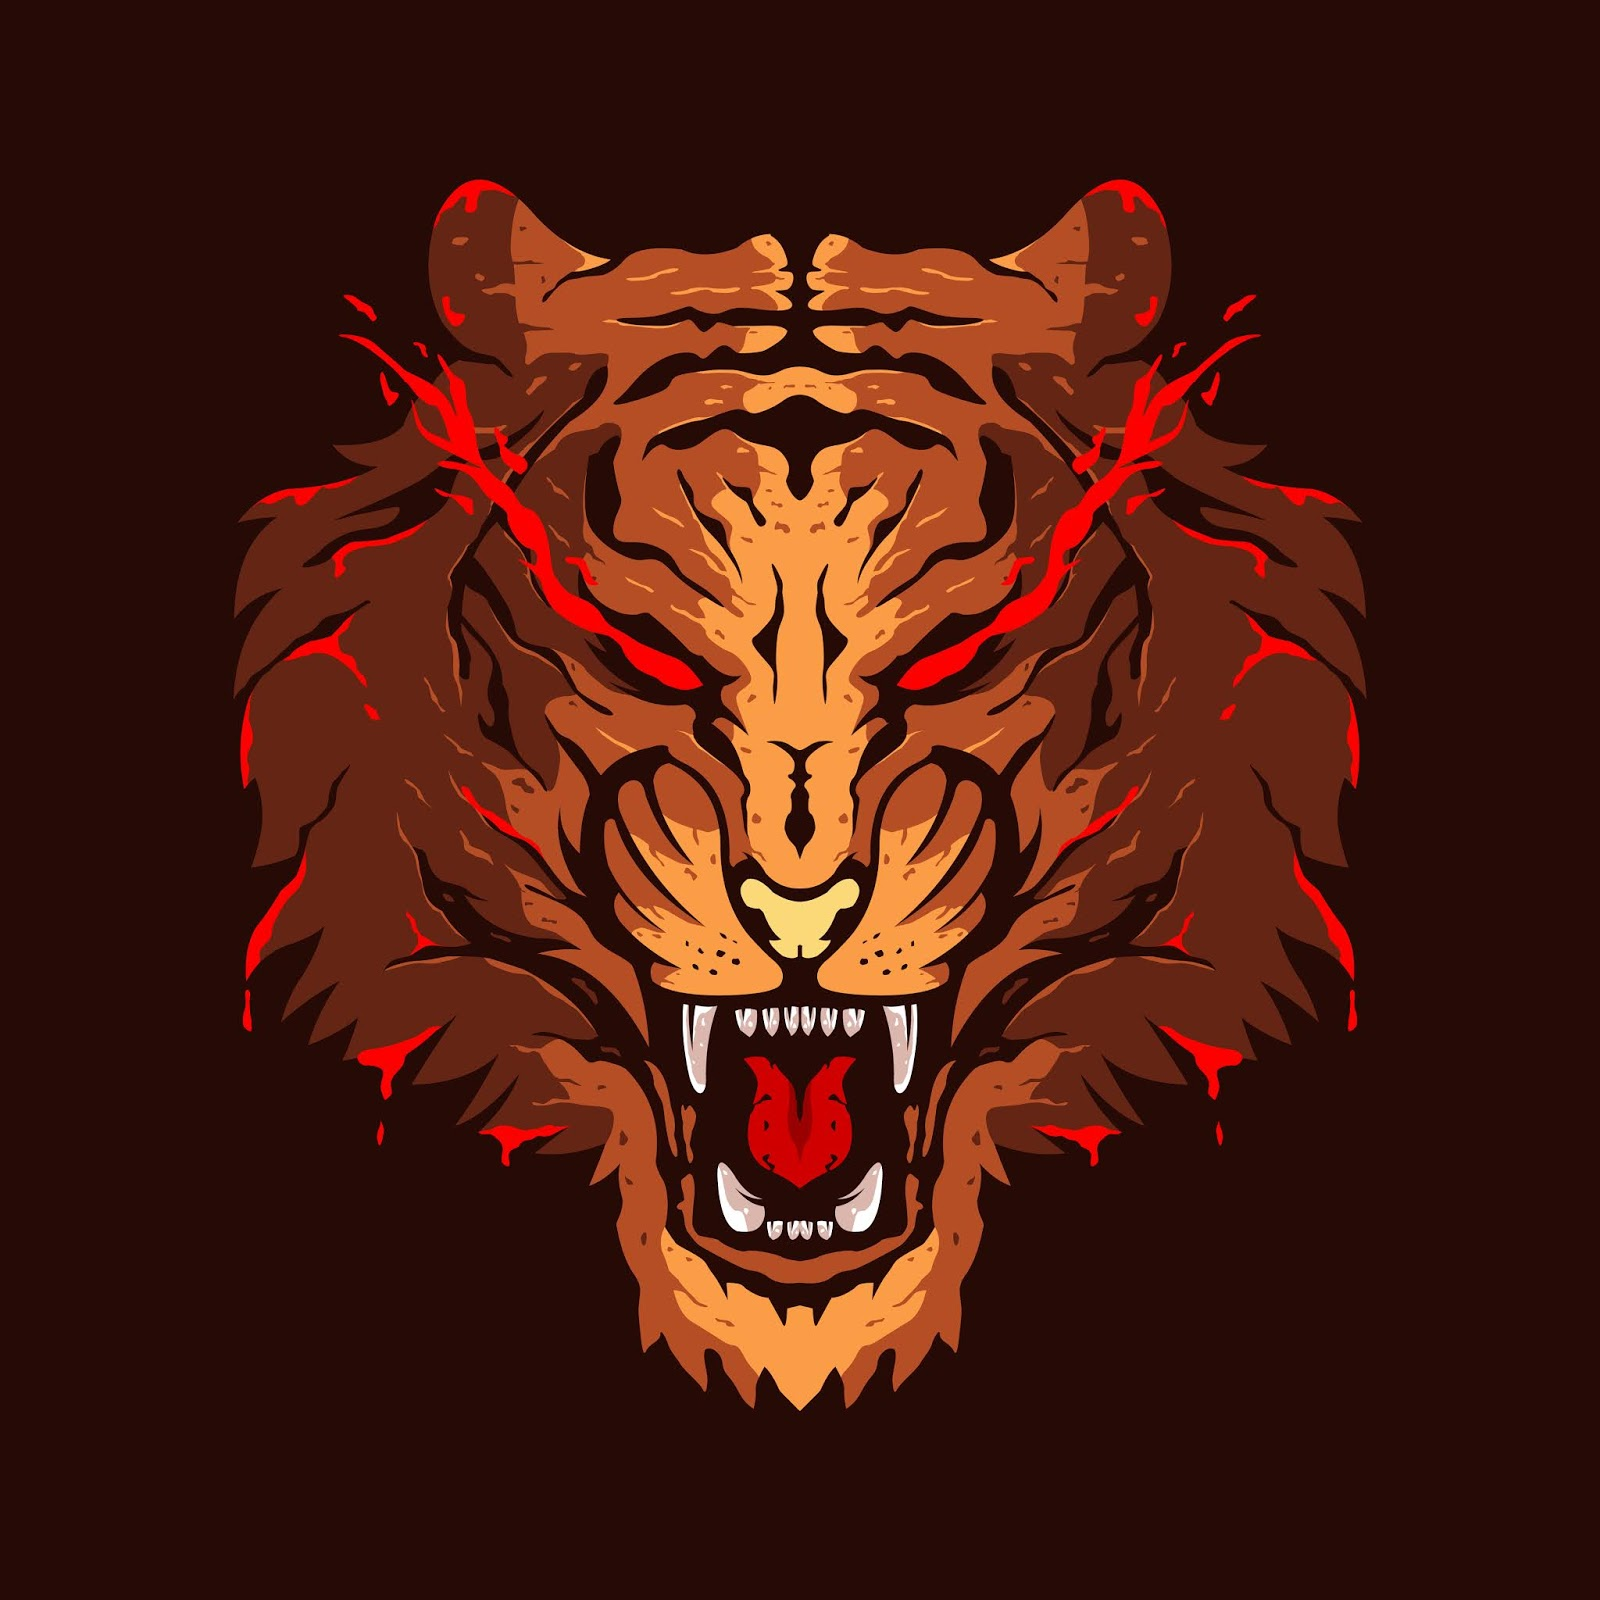 Tiger Head Illustration Colour Logo Design Free Download Vector CDR, AI, EPS and PNG Formats